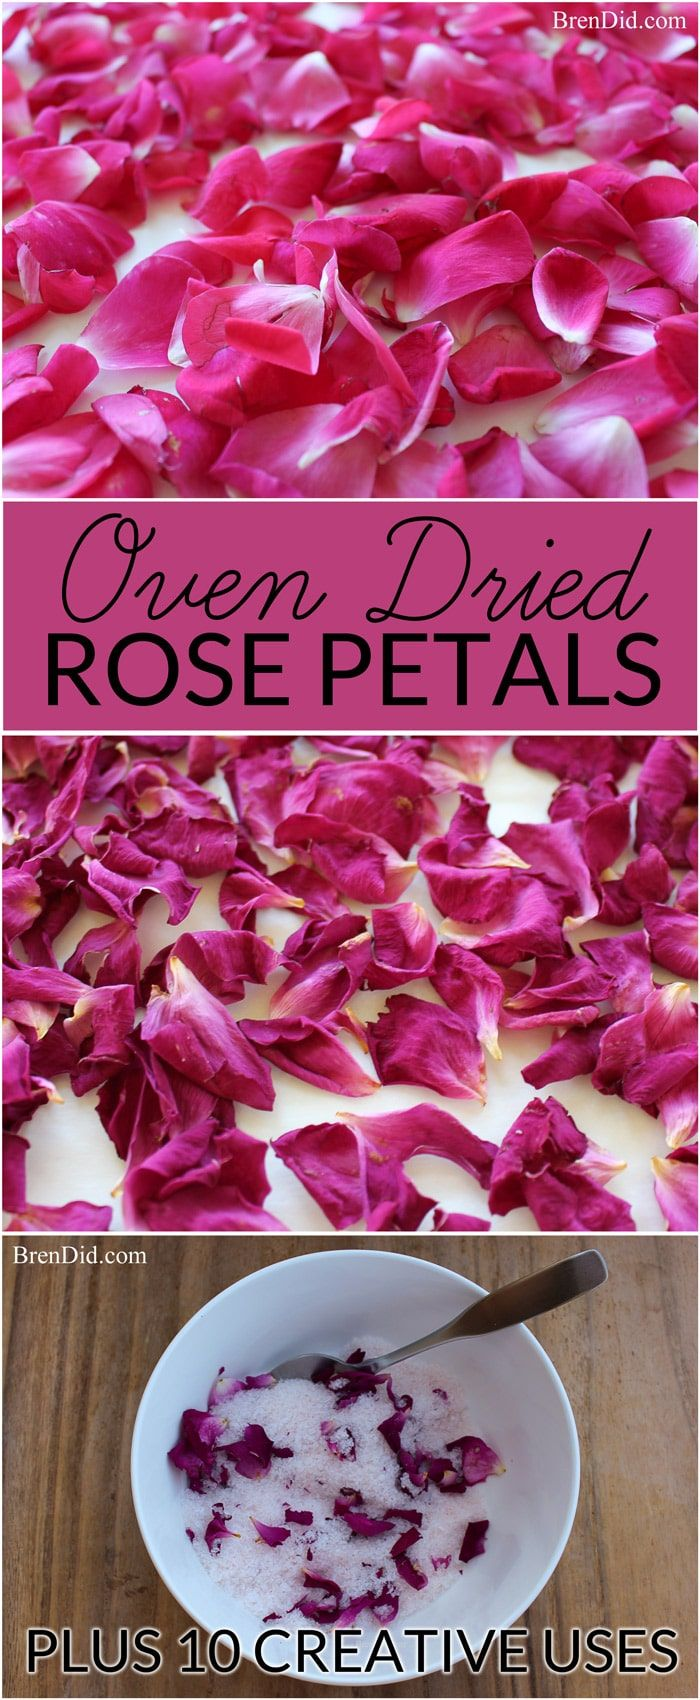 how to dry rose petals | rose petals | dried roses - Learn how to dry rose petals for natural body care recipes, crafts, décor & confetti.  via @brendidblog